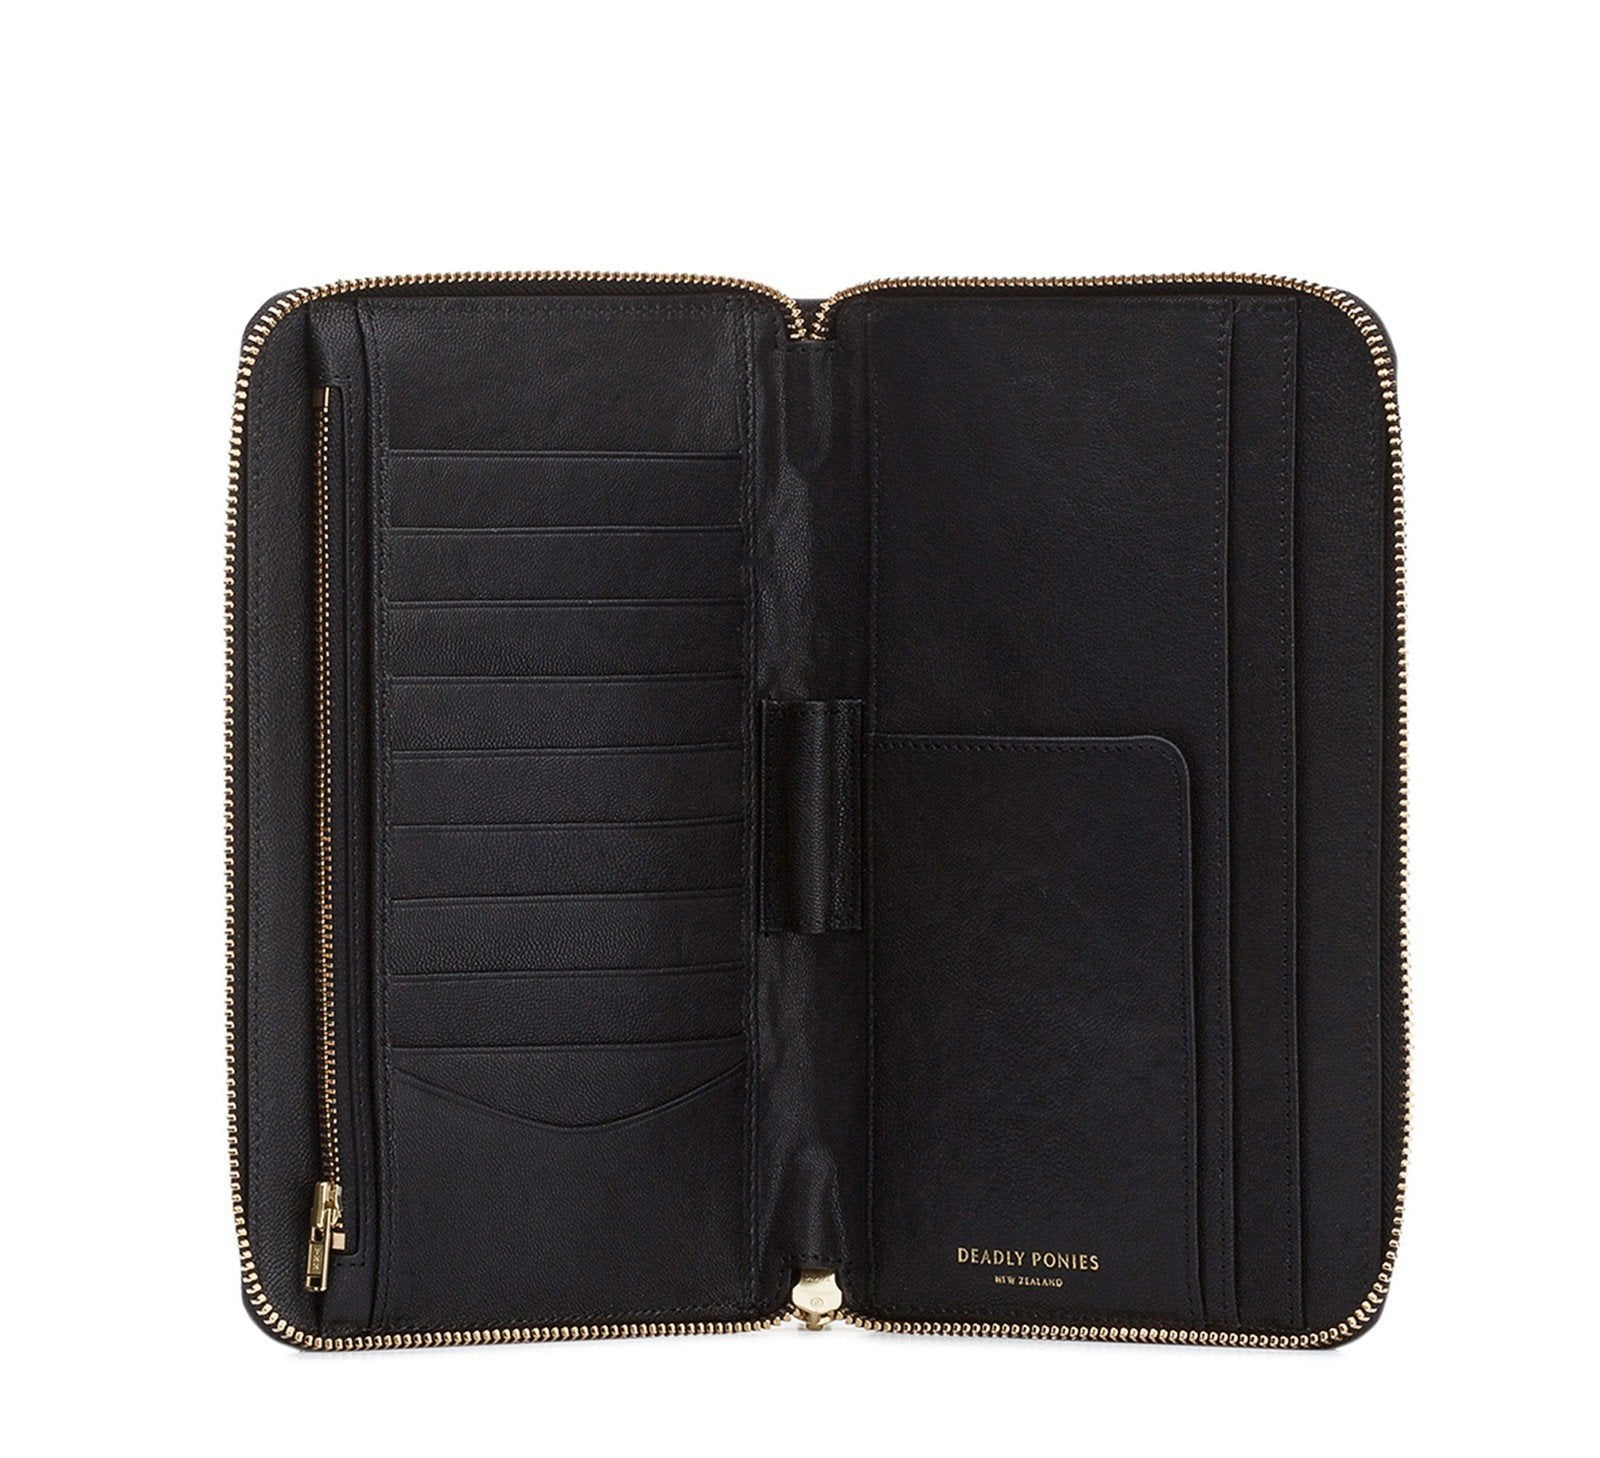 DEADLY PONIES ACC BLACK Deadly Ponies | Mr Travel Wallet - Black